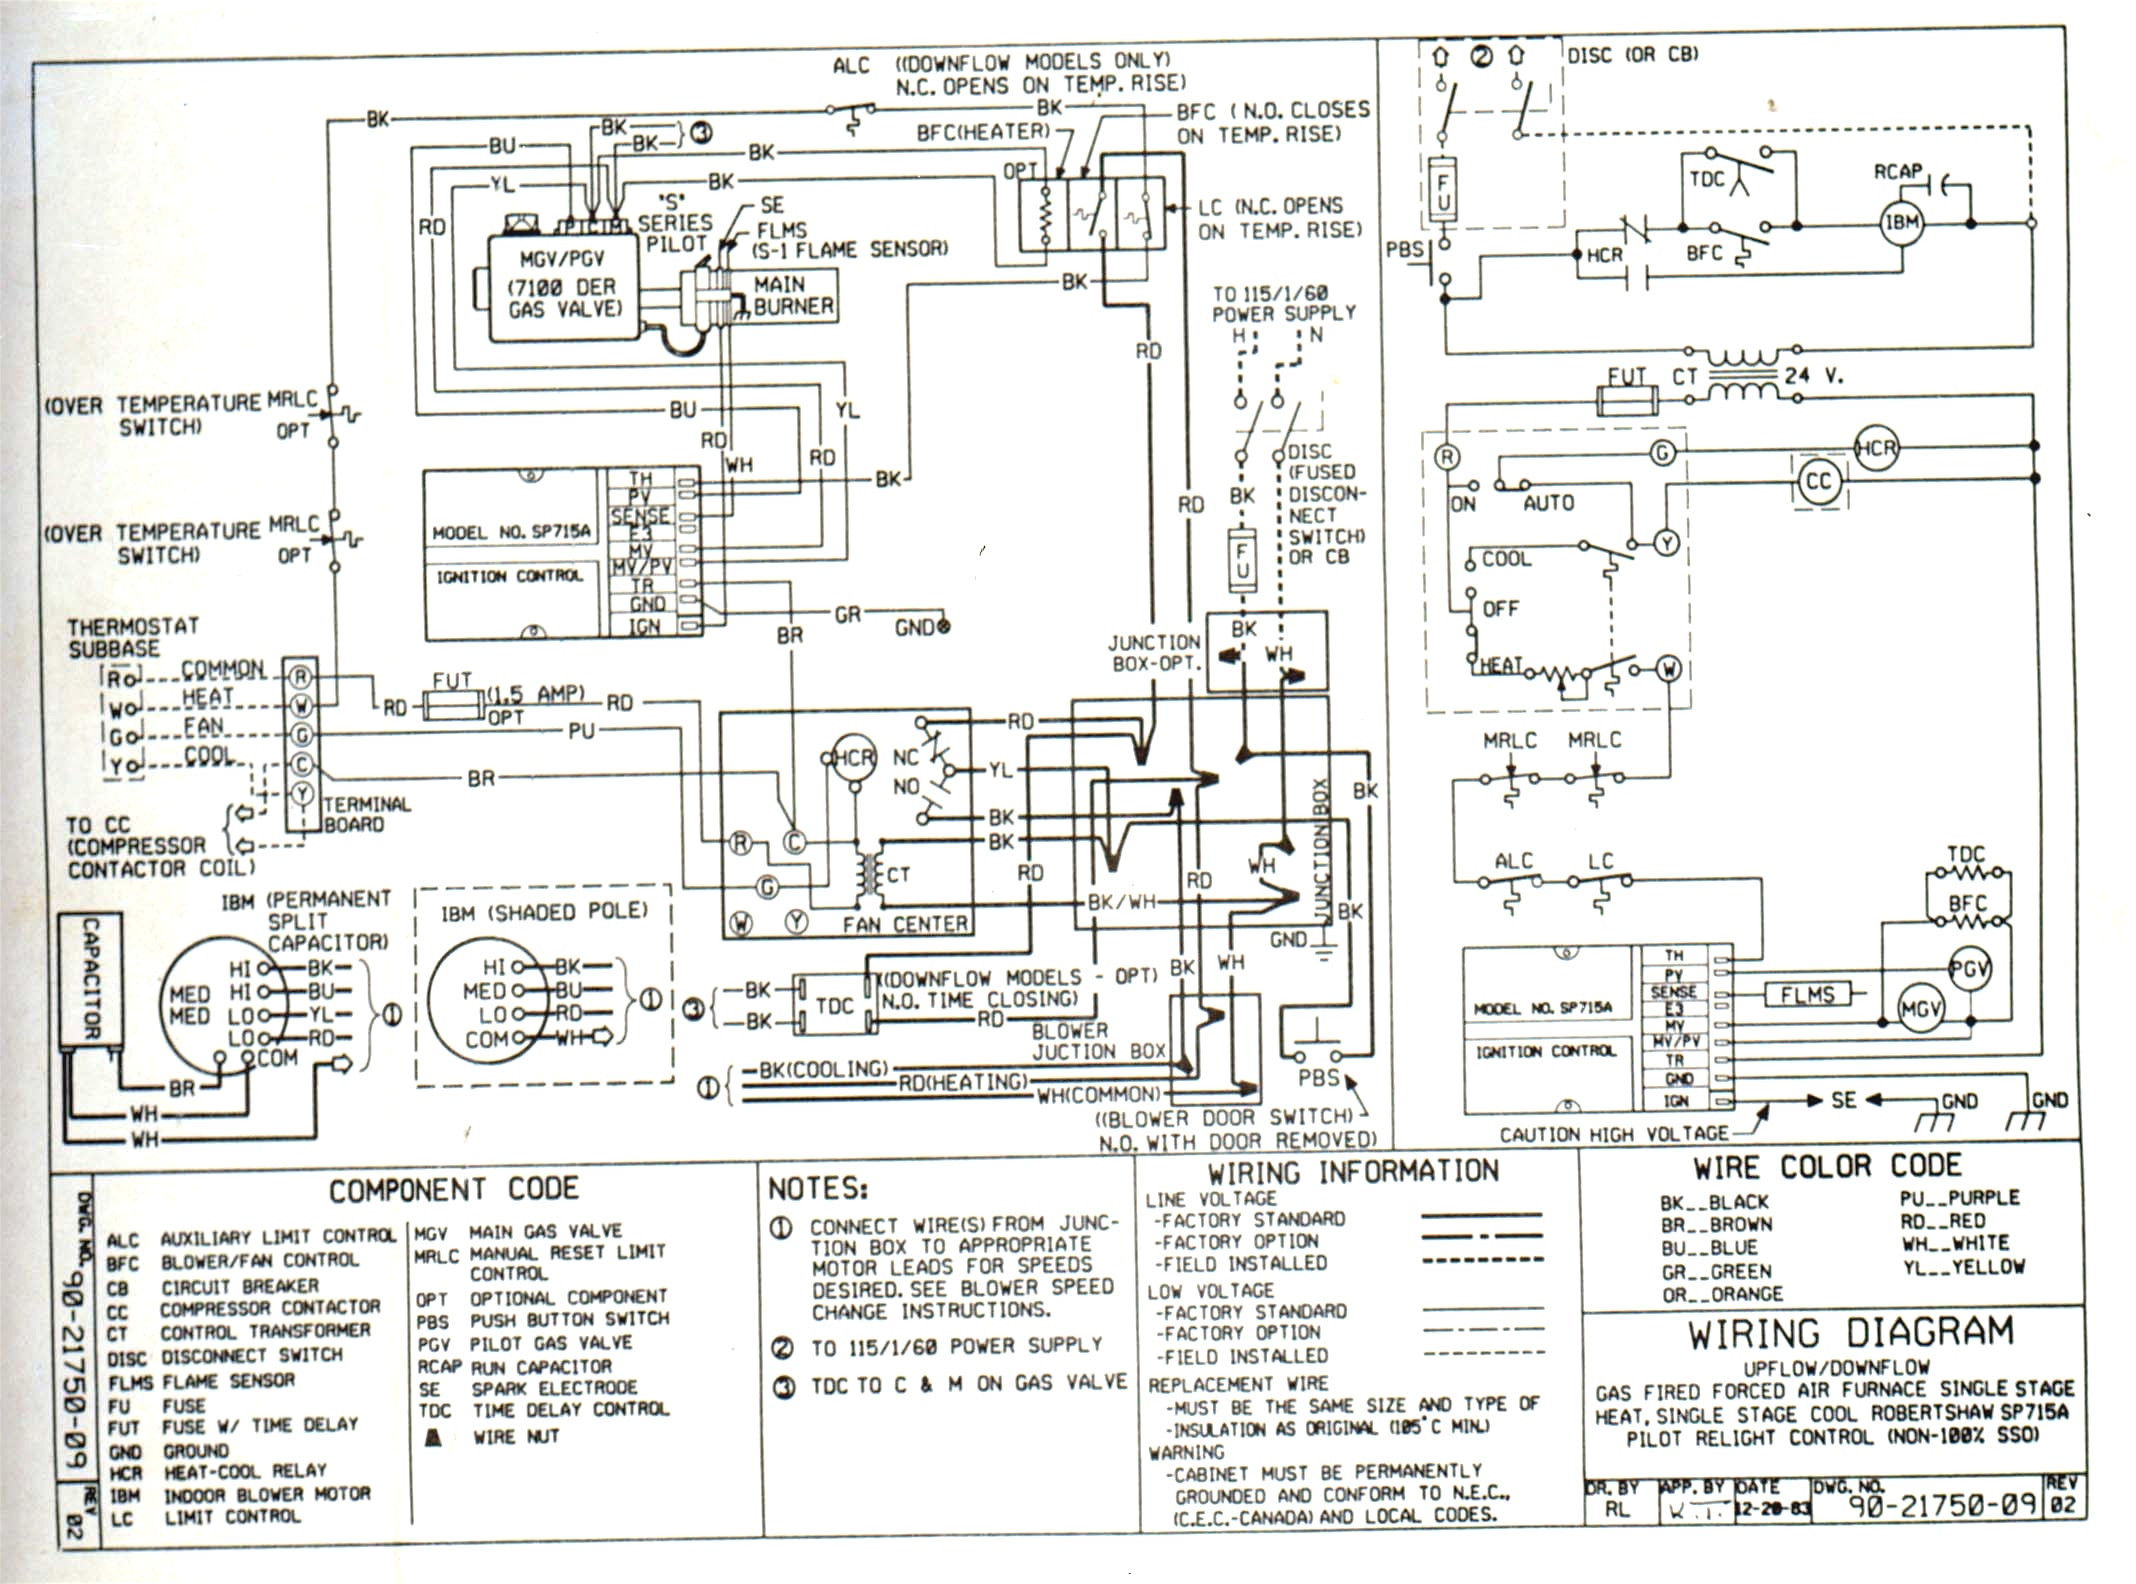 york condenser wiring diagram Download-Wiring Diagram for York Heat Pump Inspirationa Hid Wiring Diagram with Relay and Capacitor Best Inspiration 14-p